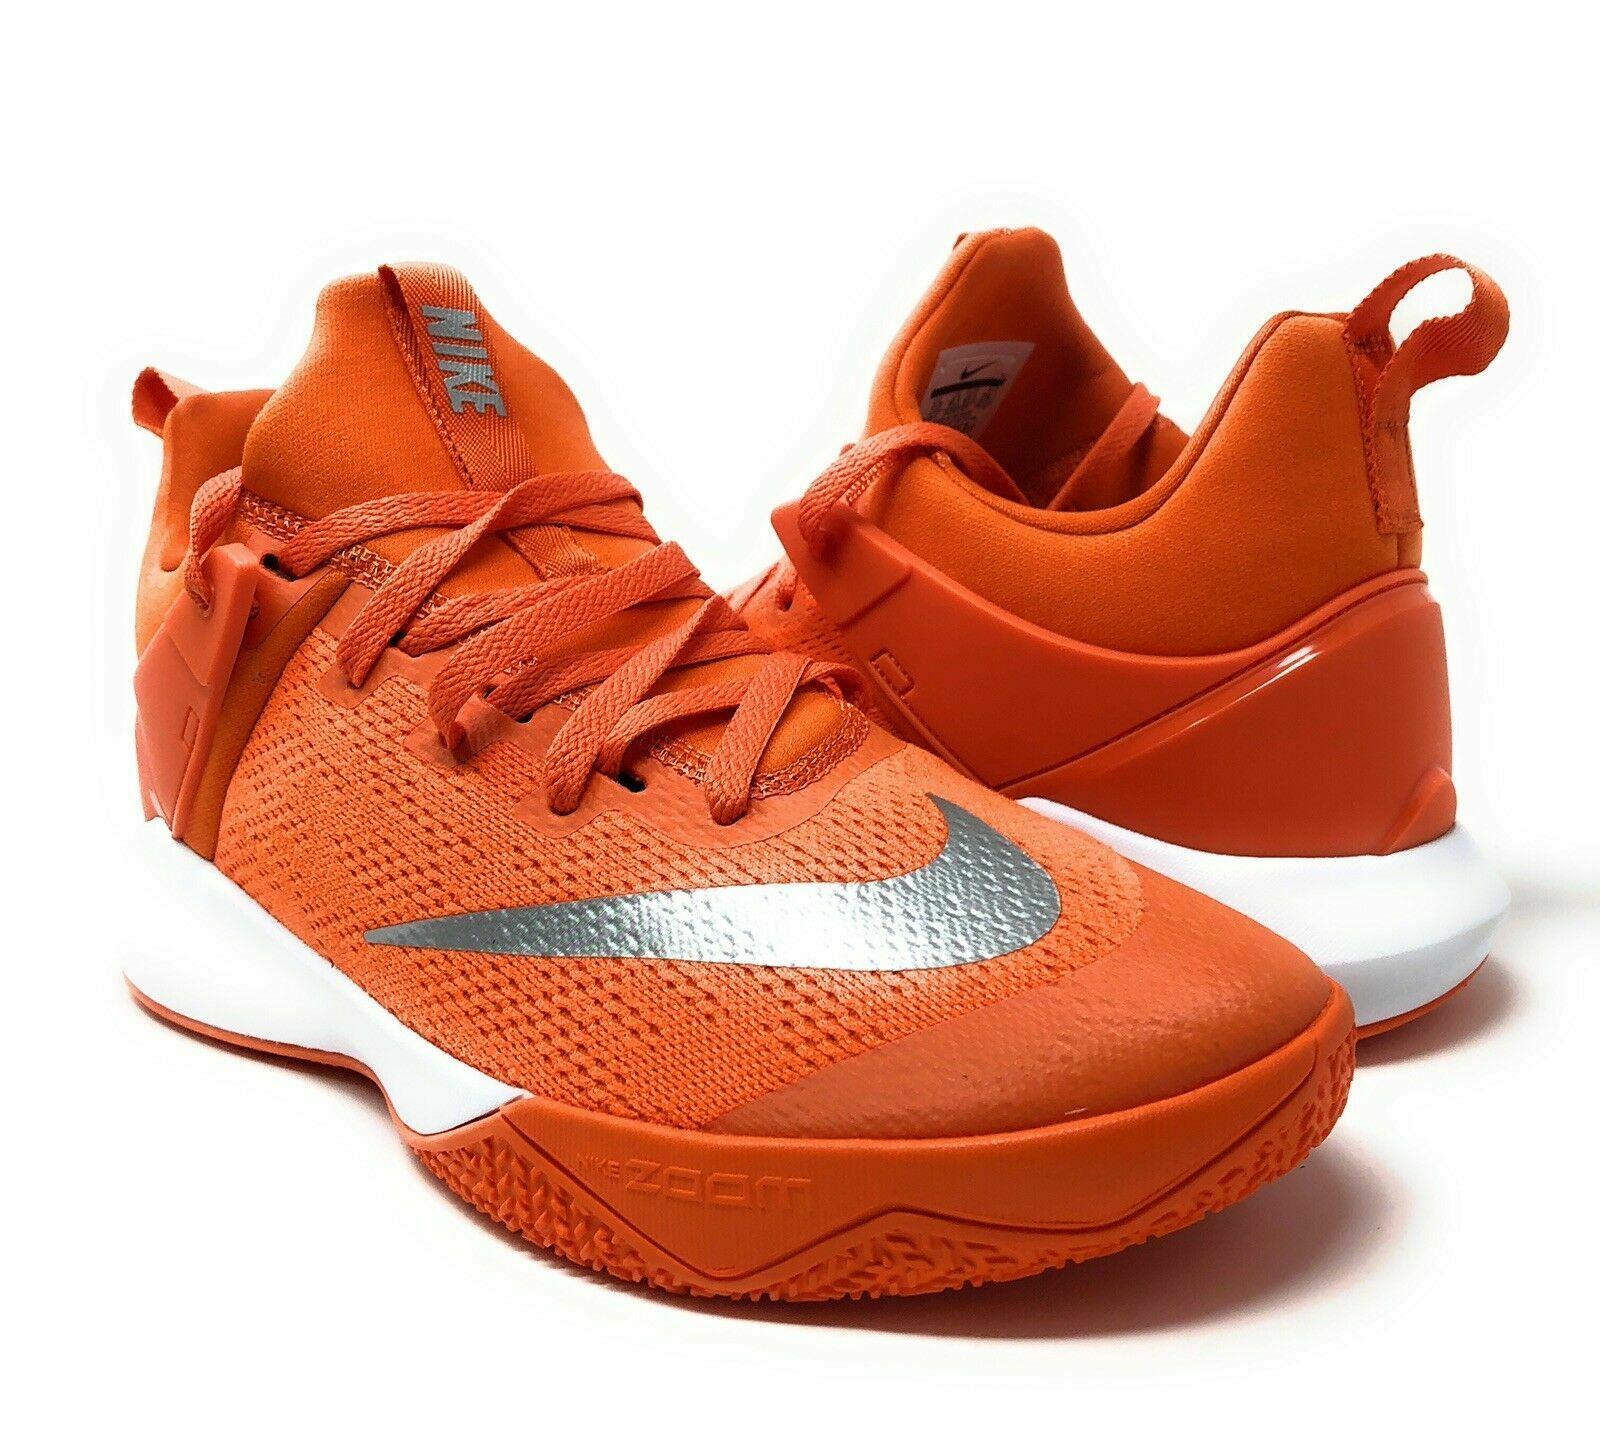 Mens Nike Zoom Shift TB TB TB Promo orange Brilliant Basketball 942802 804 shoes 14 9788e5